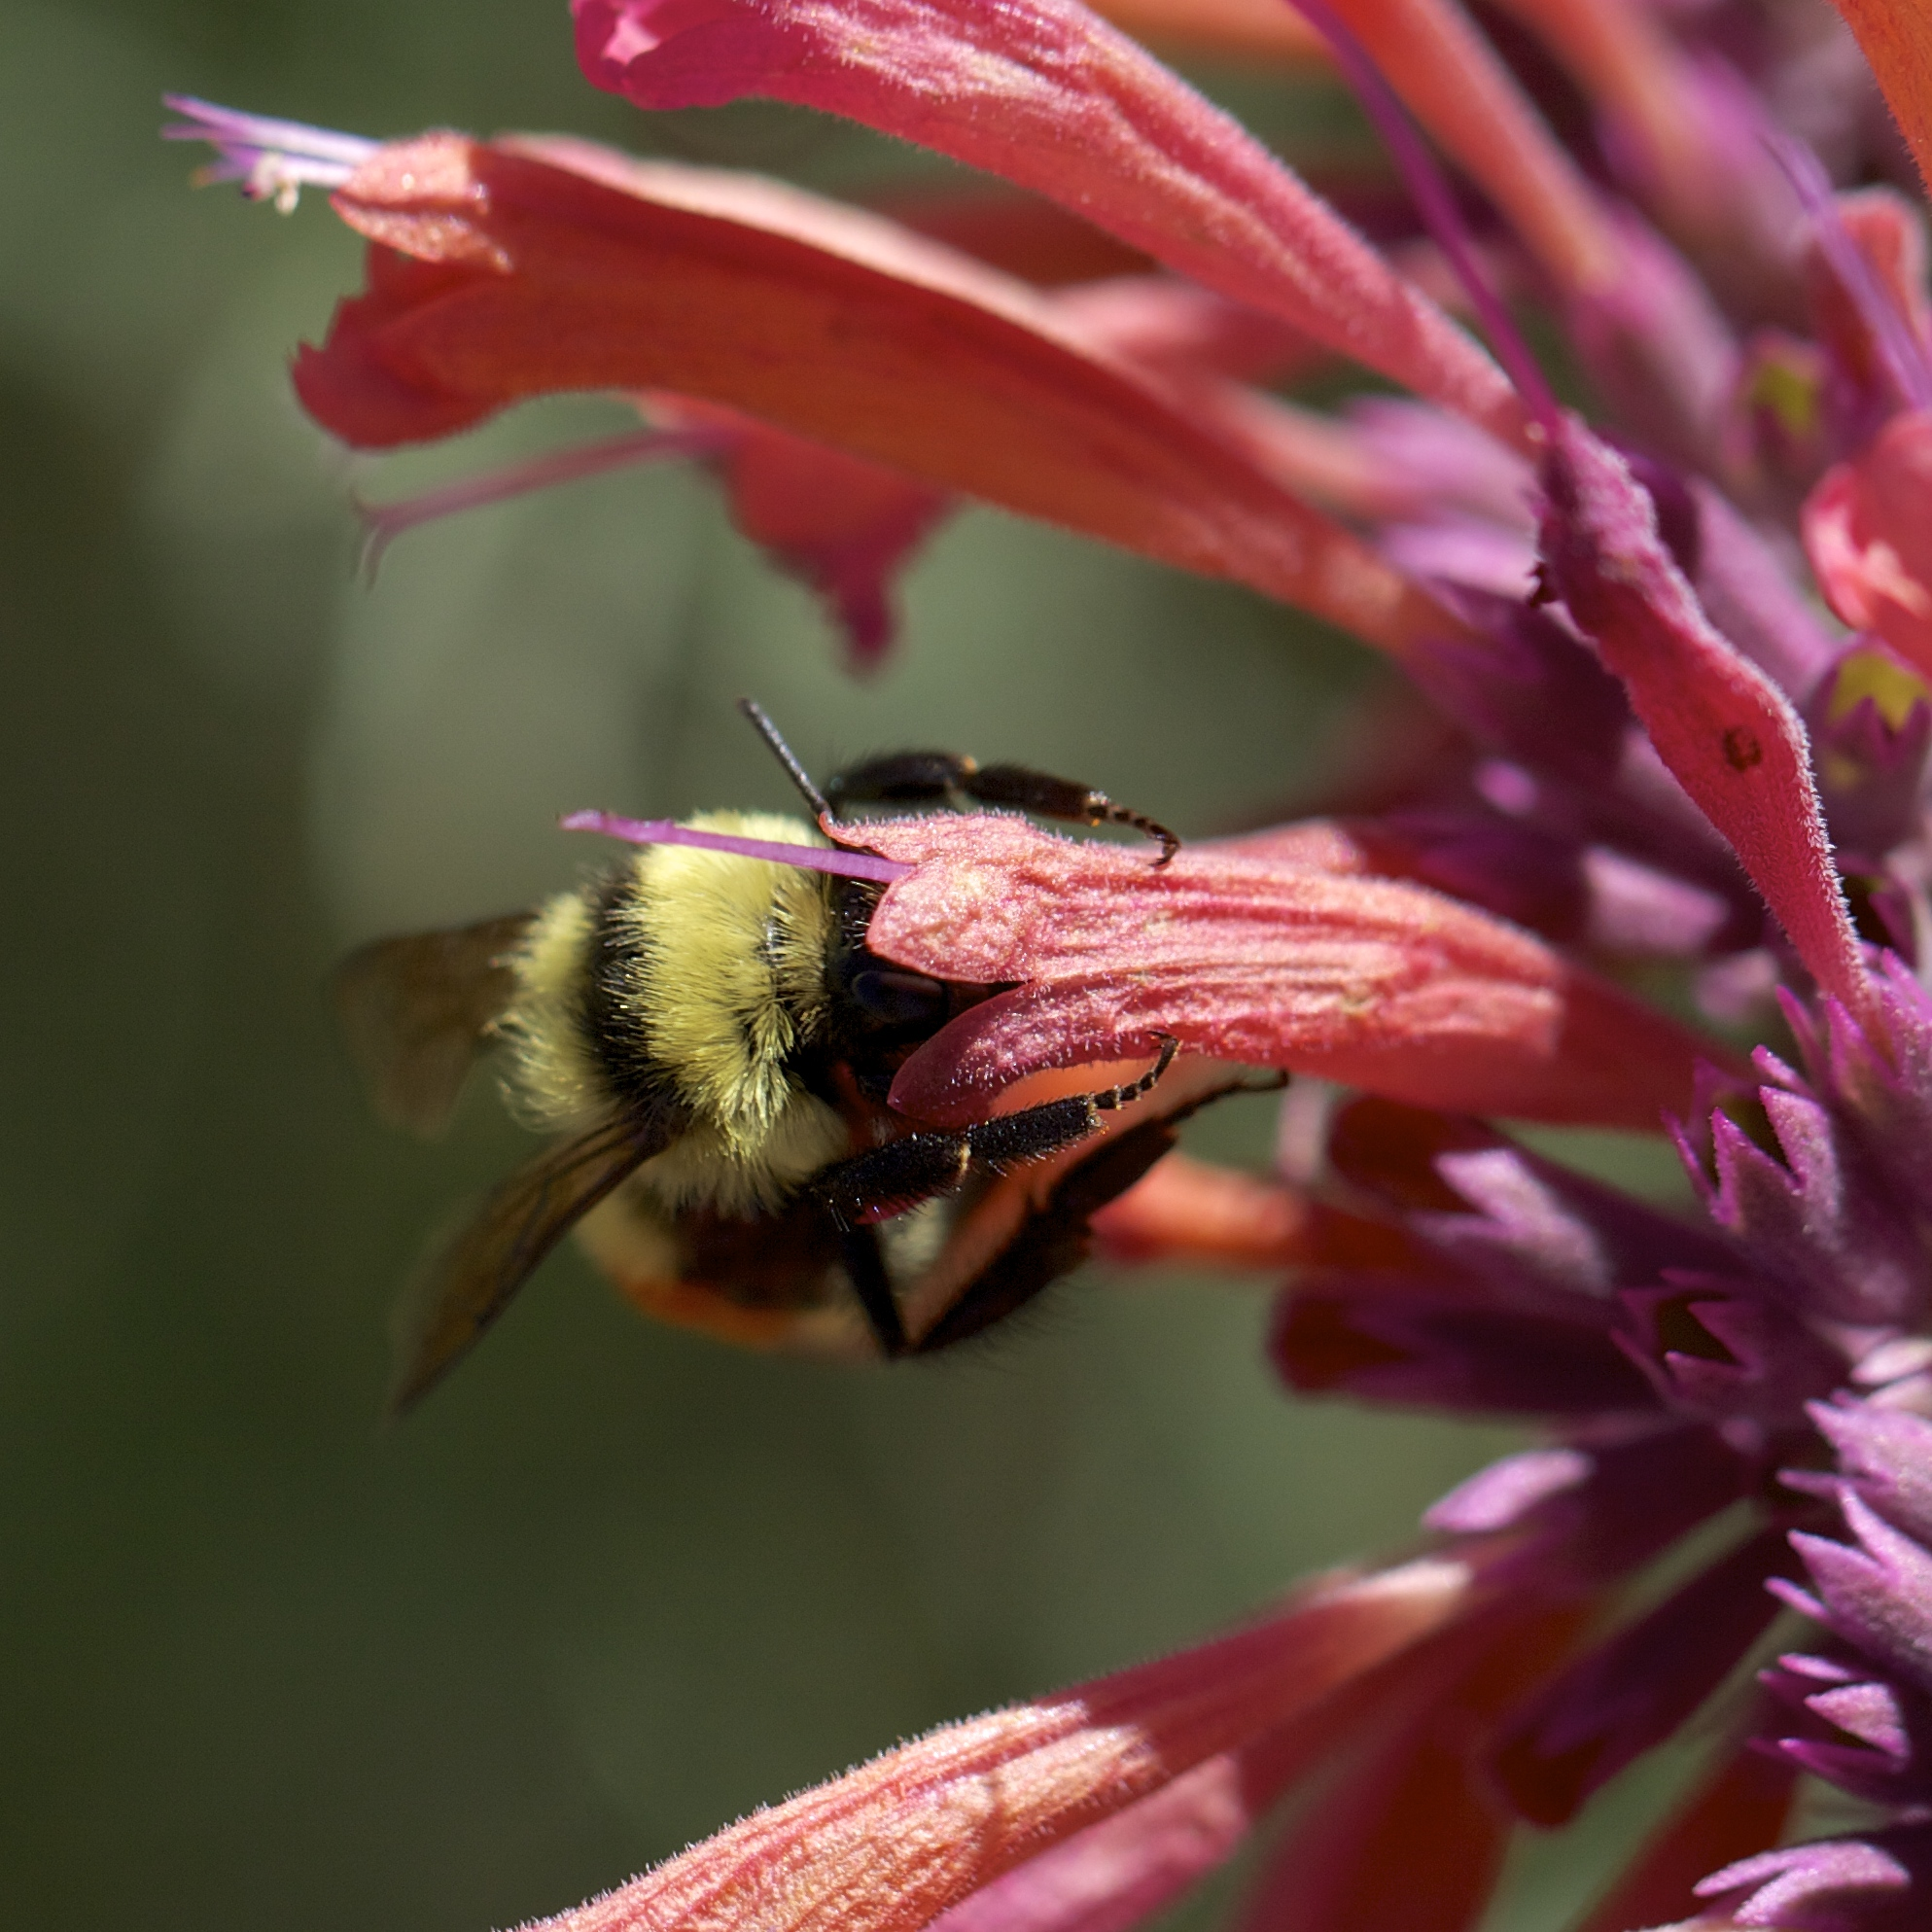 Not only the hummingbirds but bumblebees and wasps are enjoying the long-lasting blossoms of Agastache